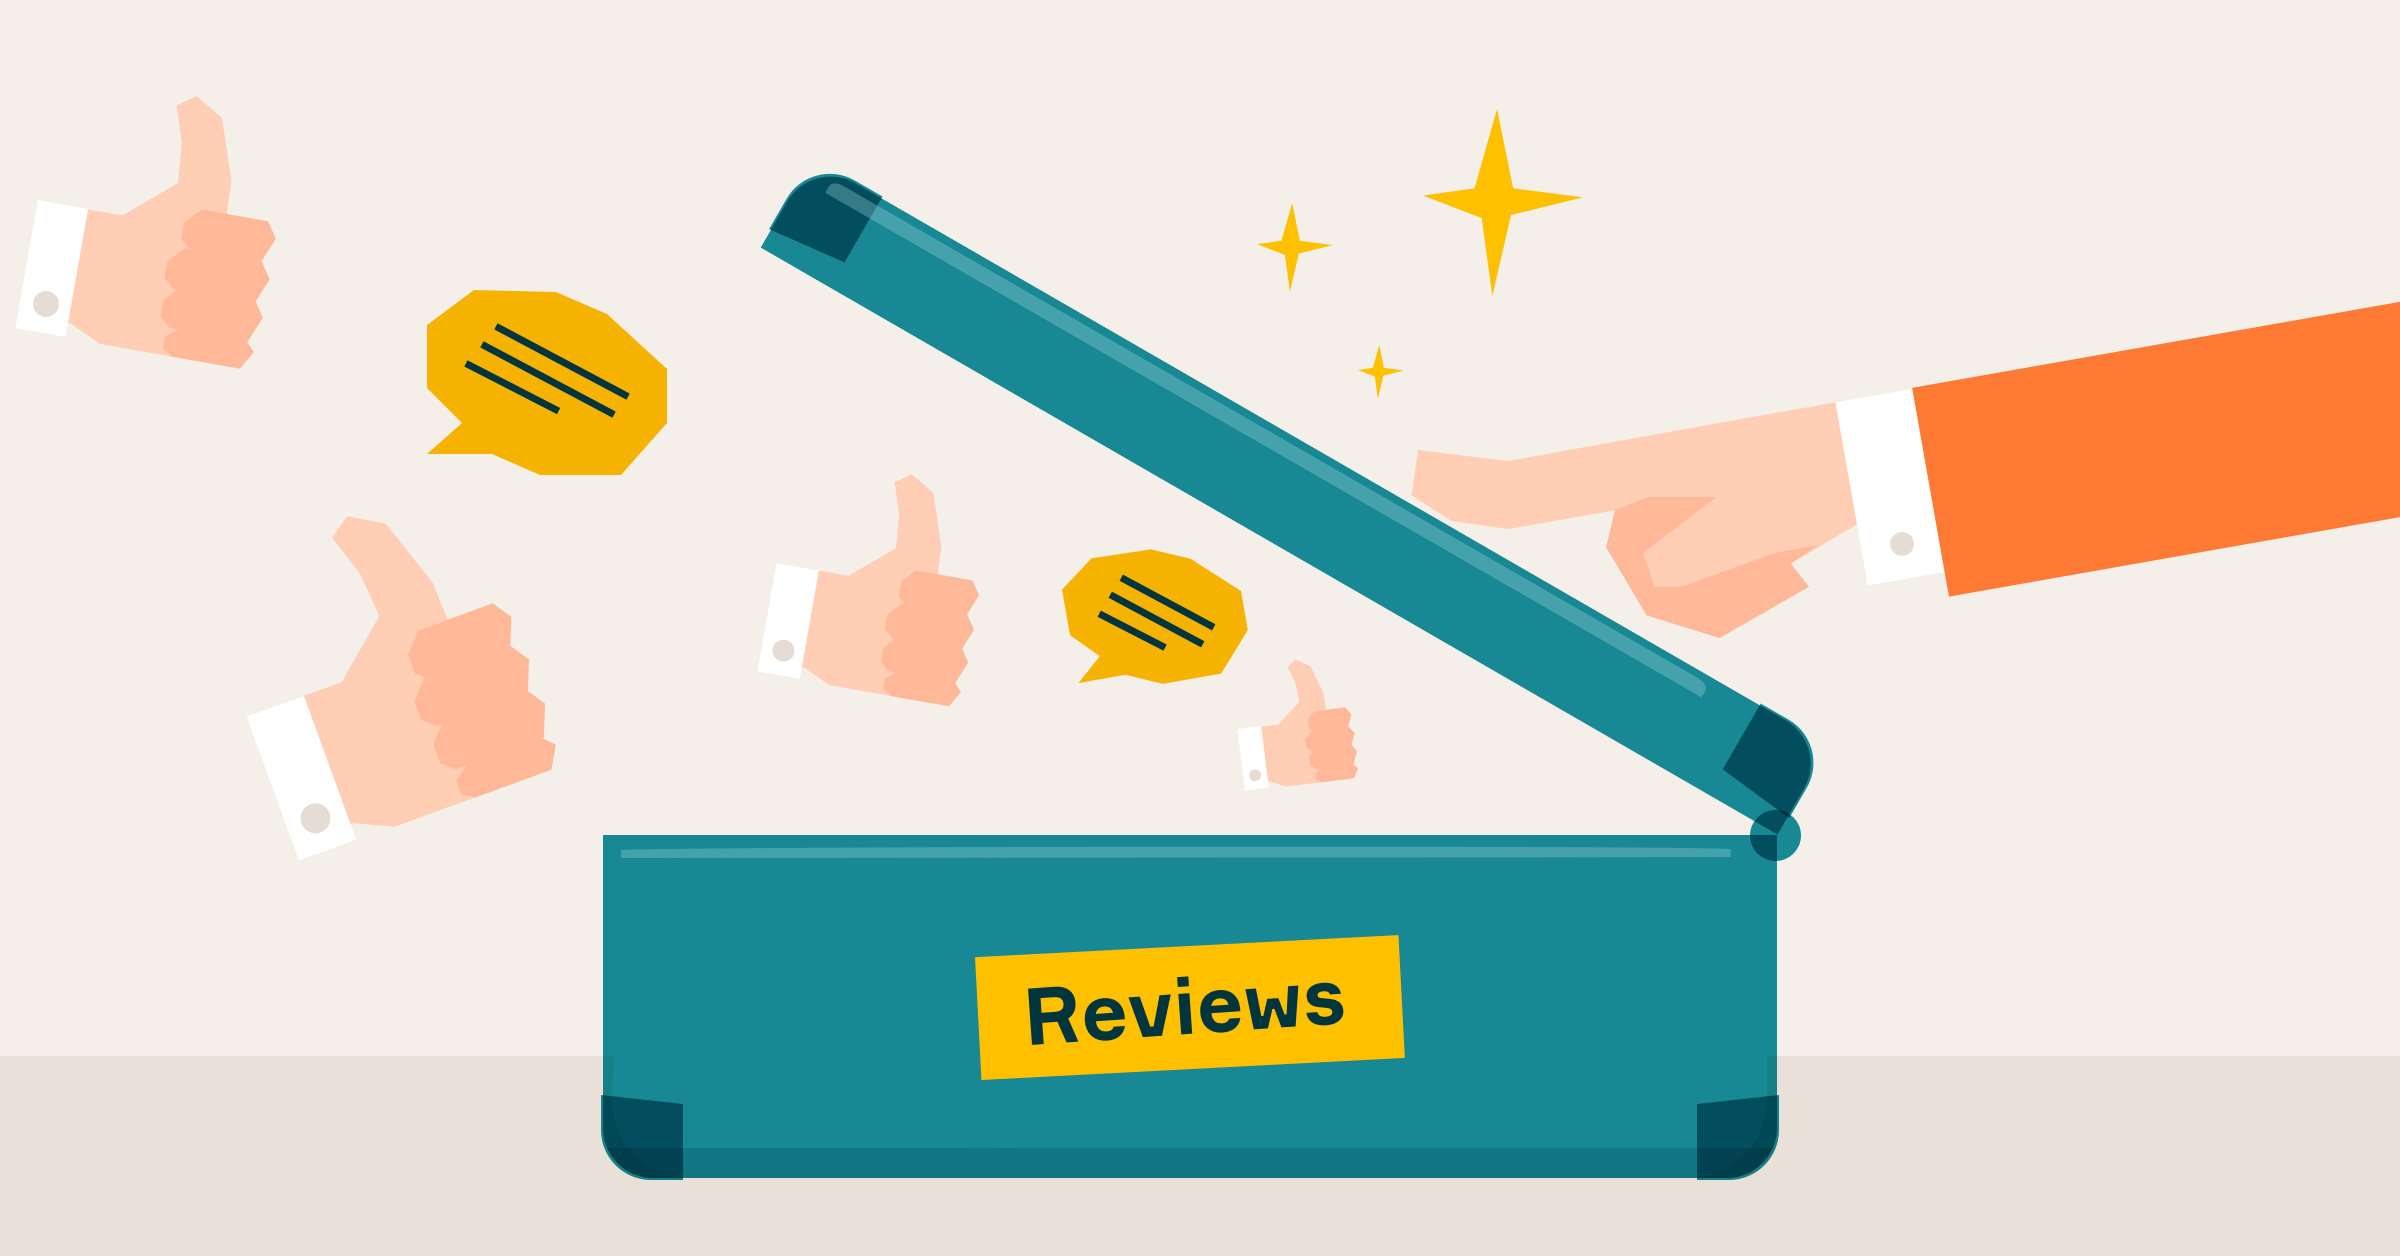 7 Ultimate Tips to Get Good Reviews for Your Online Business